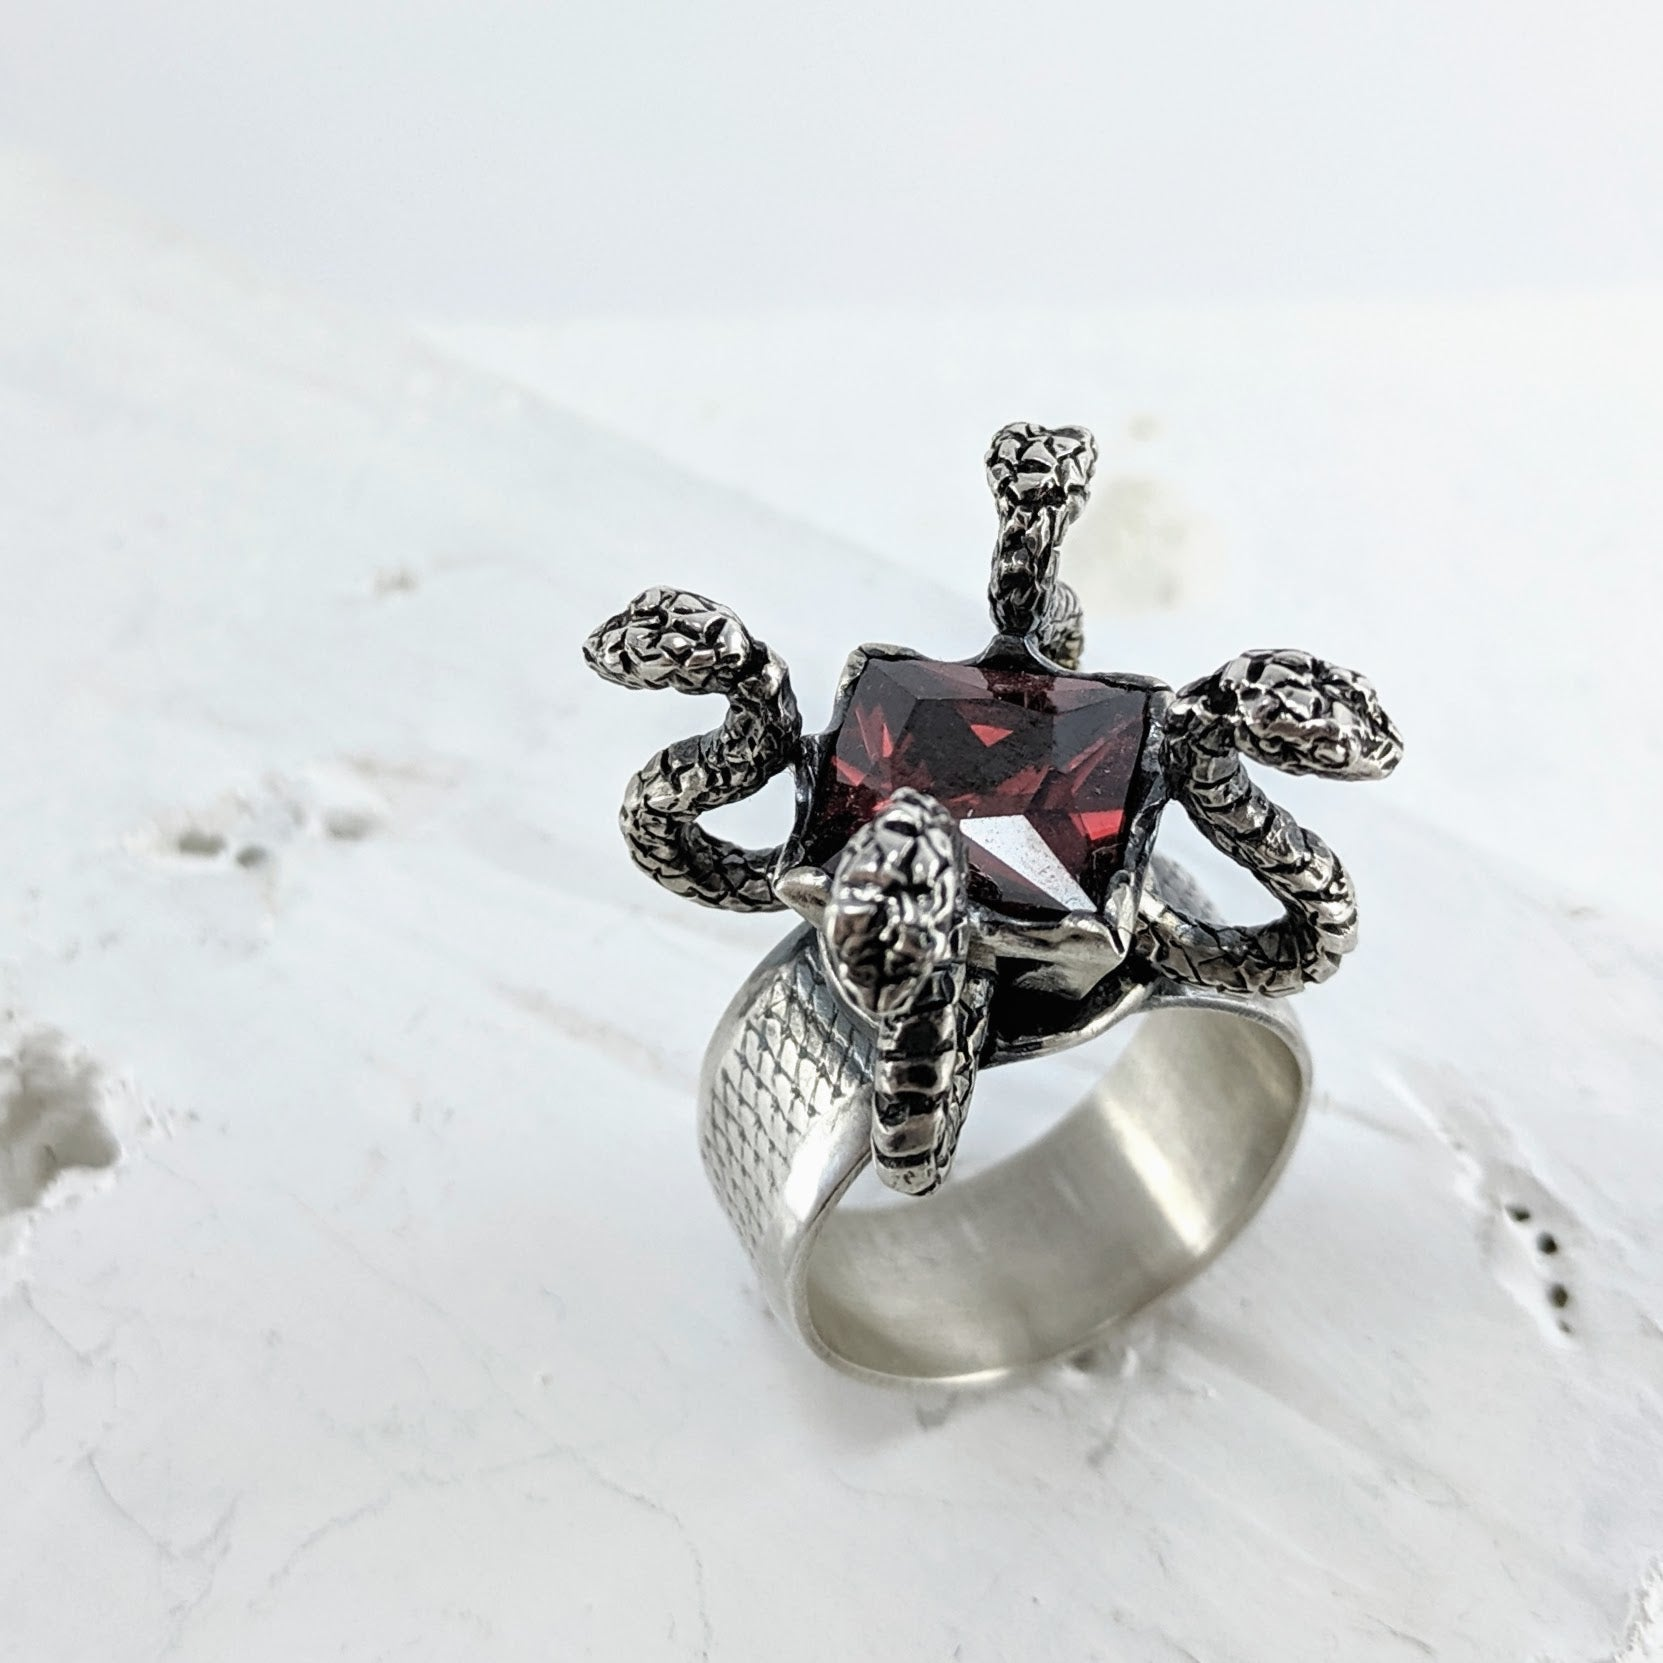 A silver ring by NZ jeweller Nick Rule. The band has a fine texture around the middle. Four carved snakes hold up a square dark red gemstone. It has an aged patina.